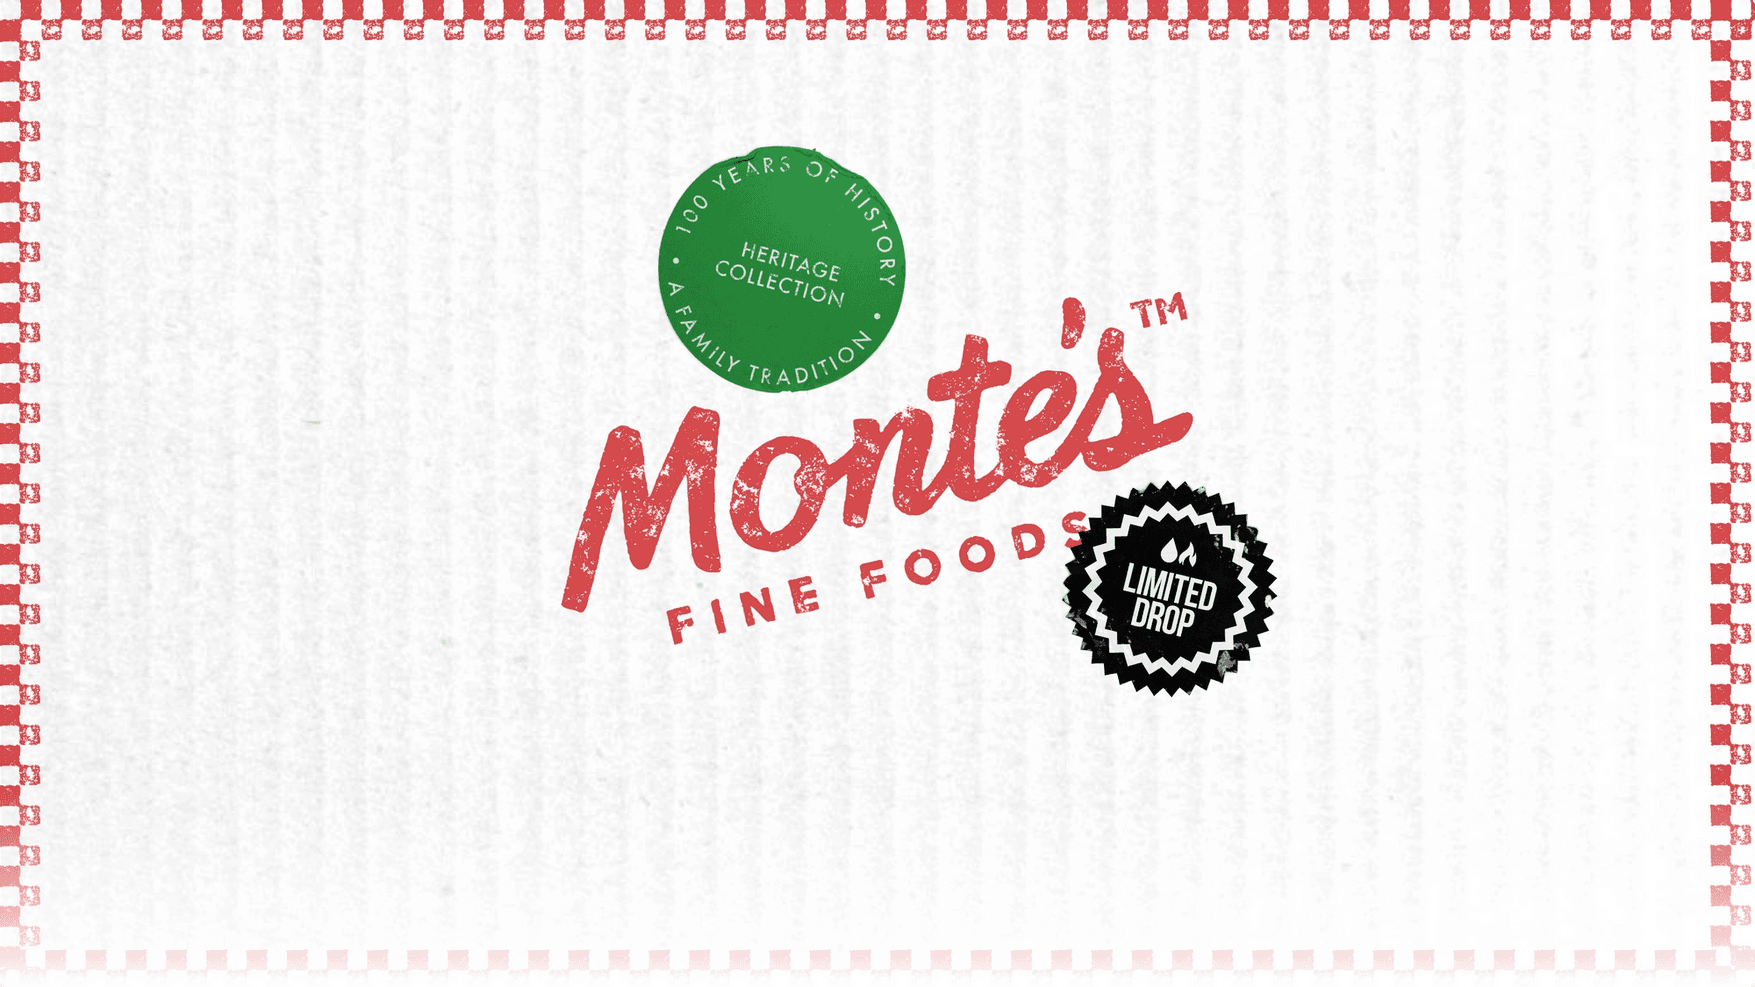 montes sauce fine foods heritage collection